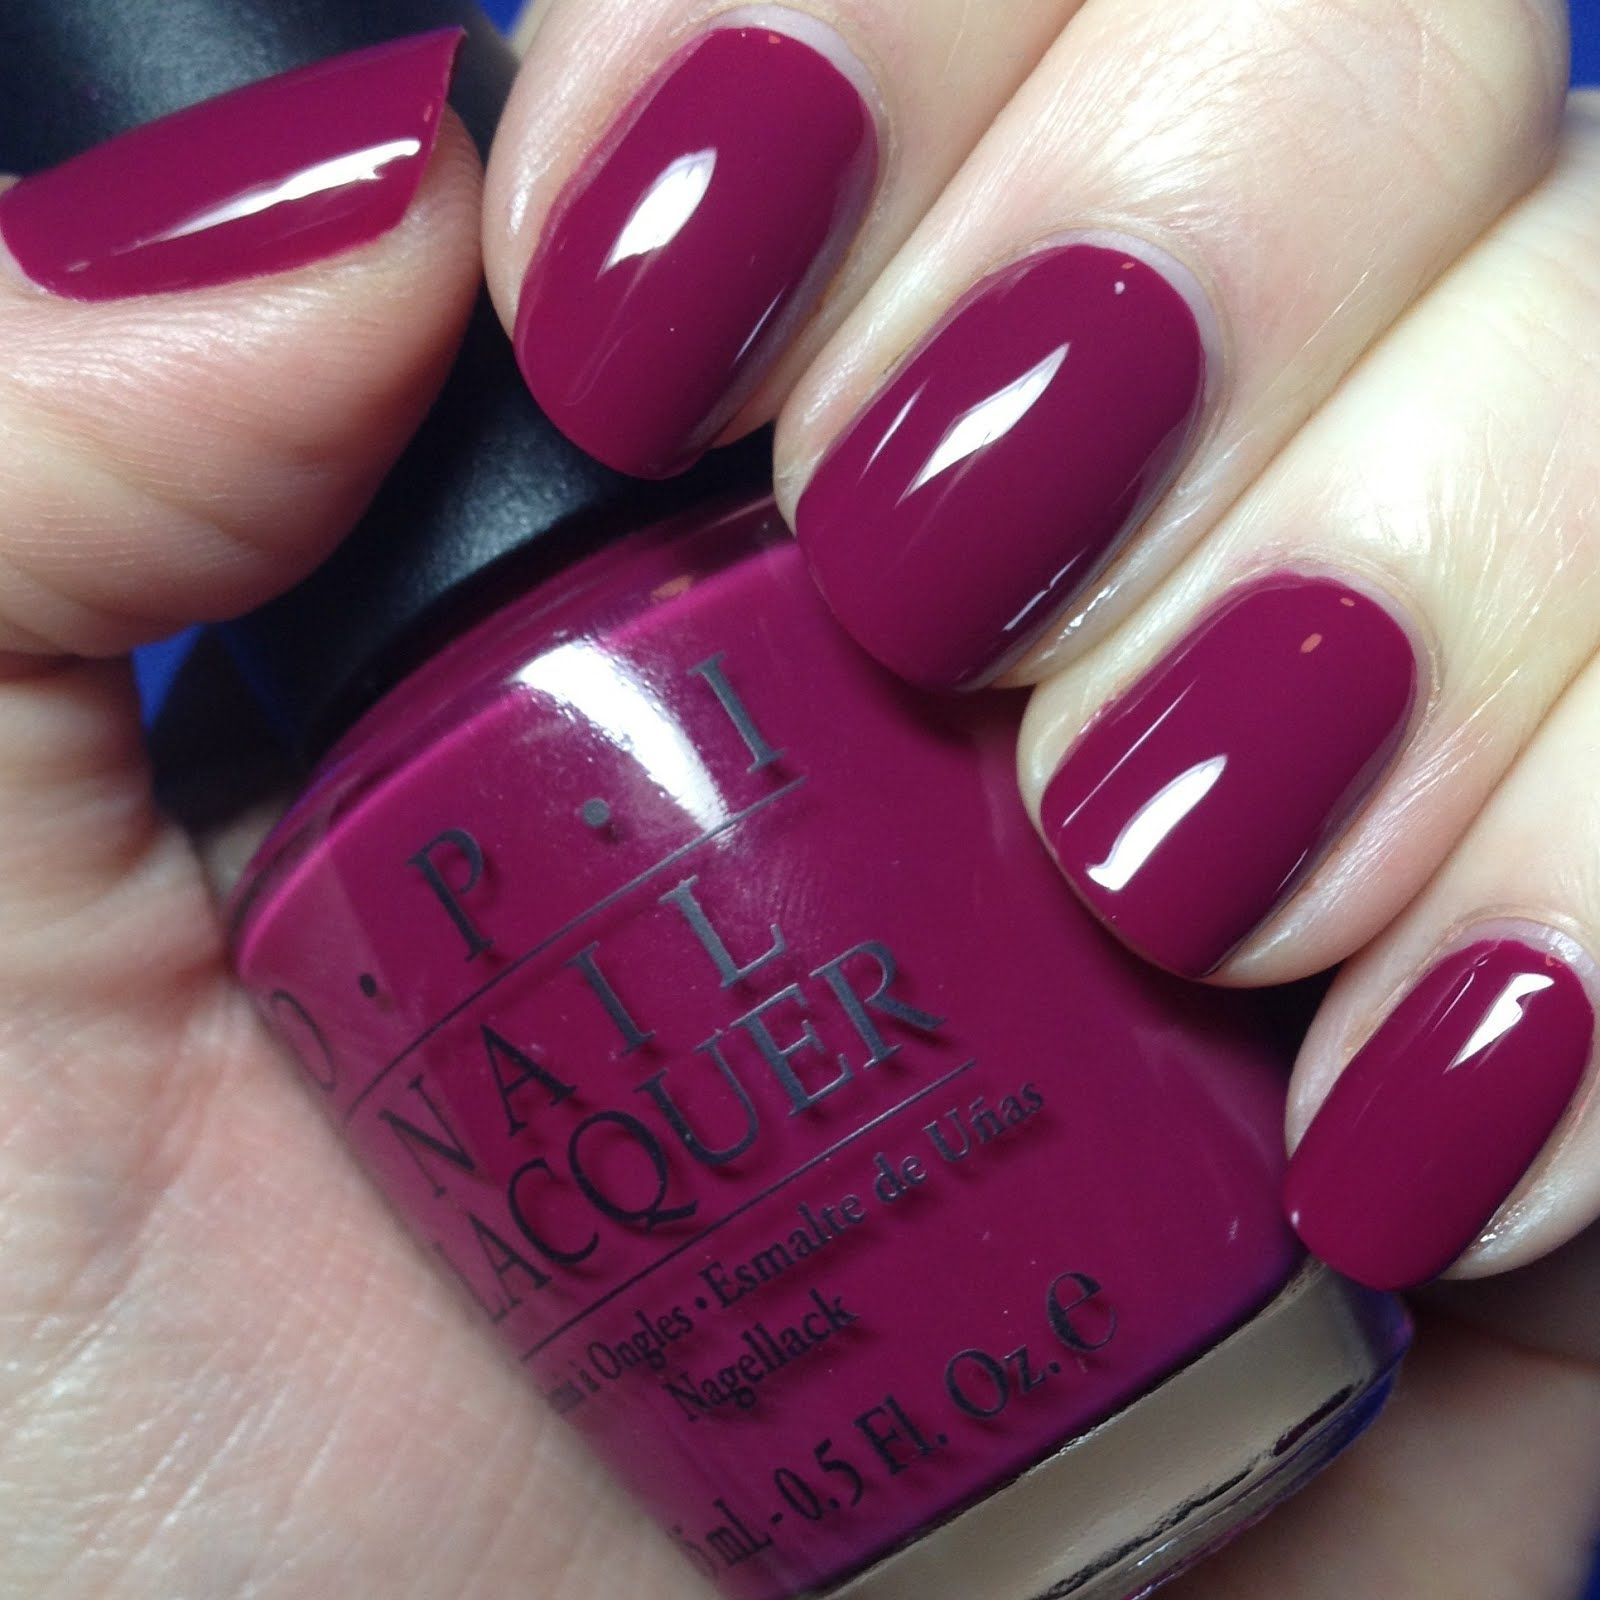 Nice opi nail polish colors list 4 opi nail polish color names list - Opi Nail Polish Lacquer South Beach Miami Beet B78